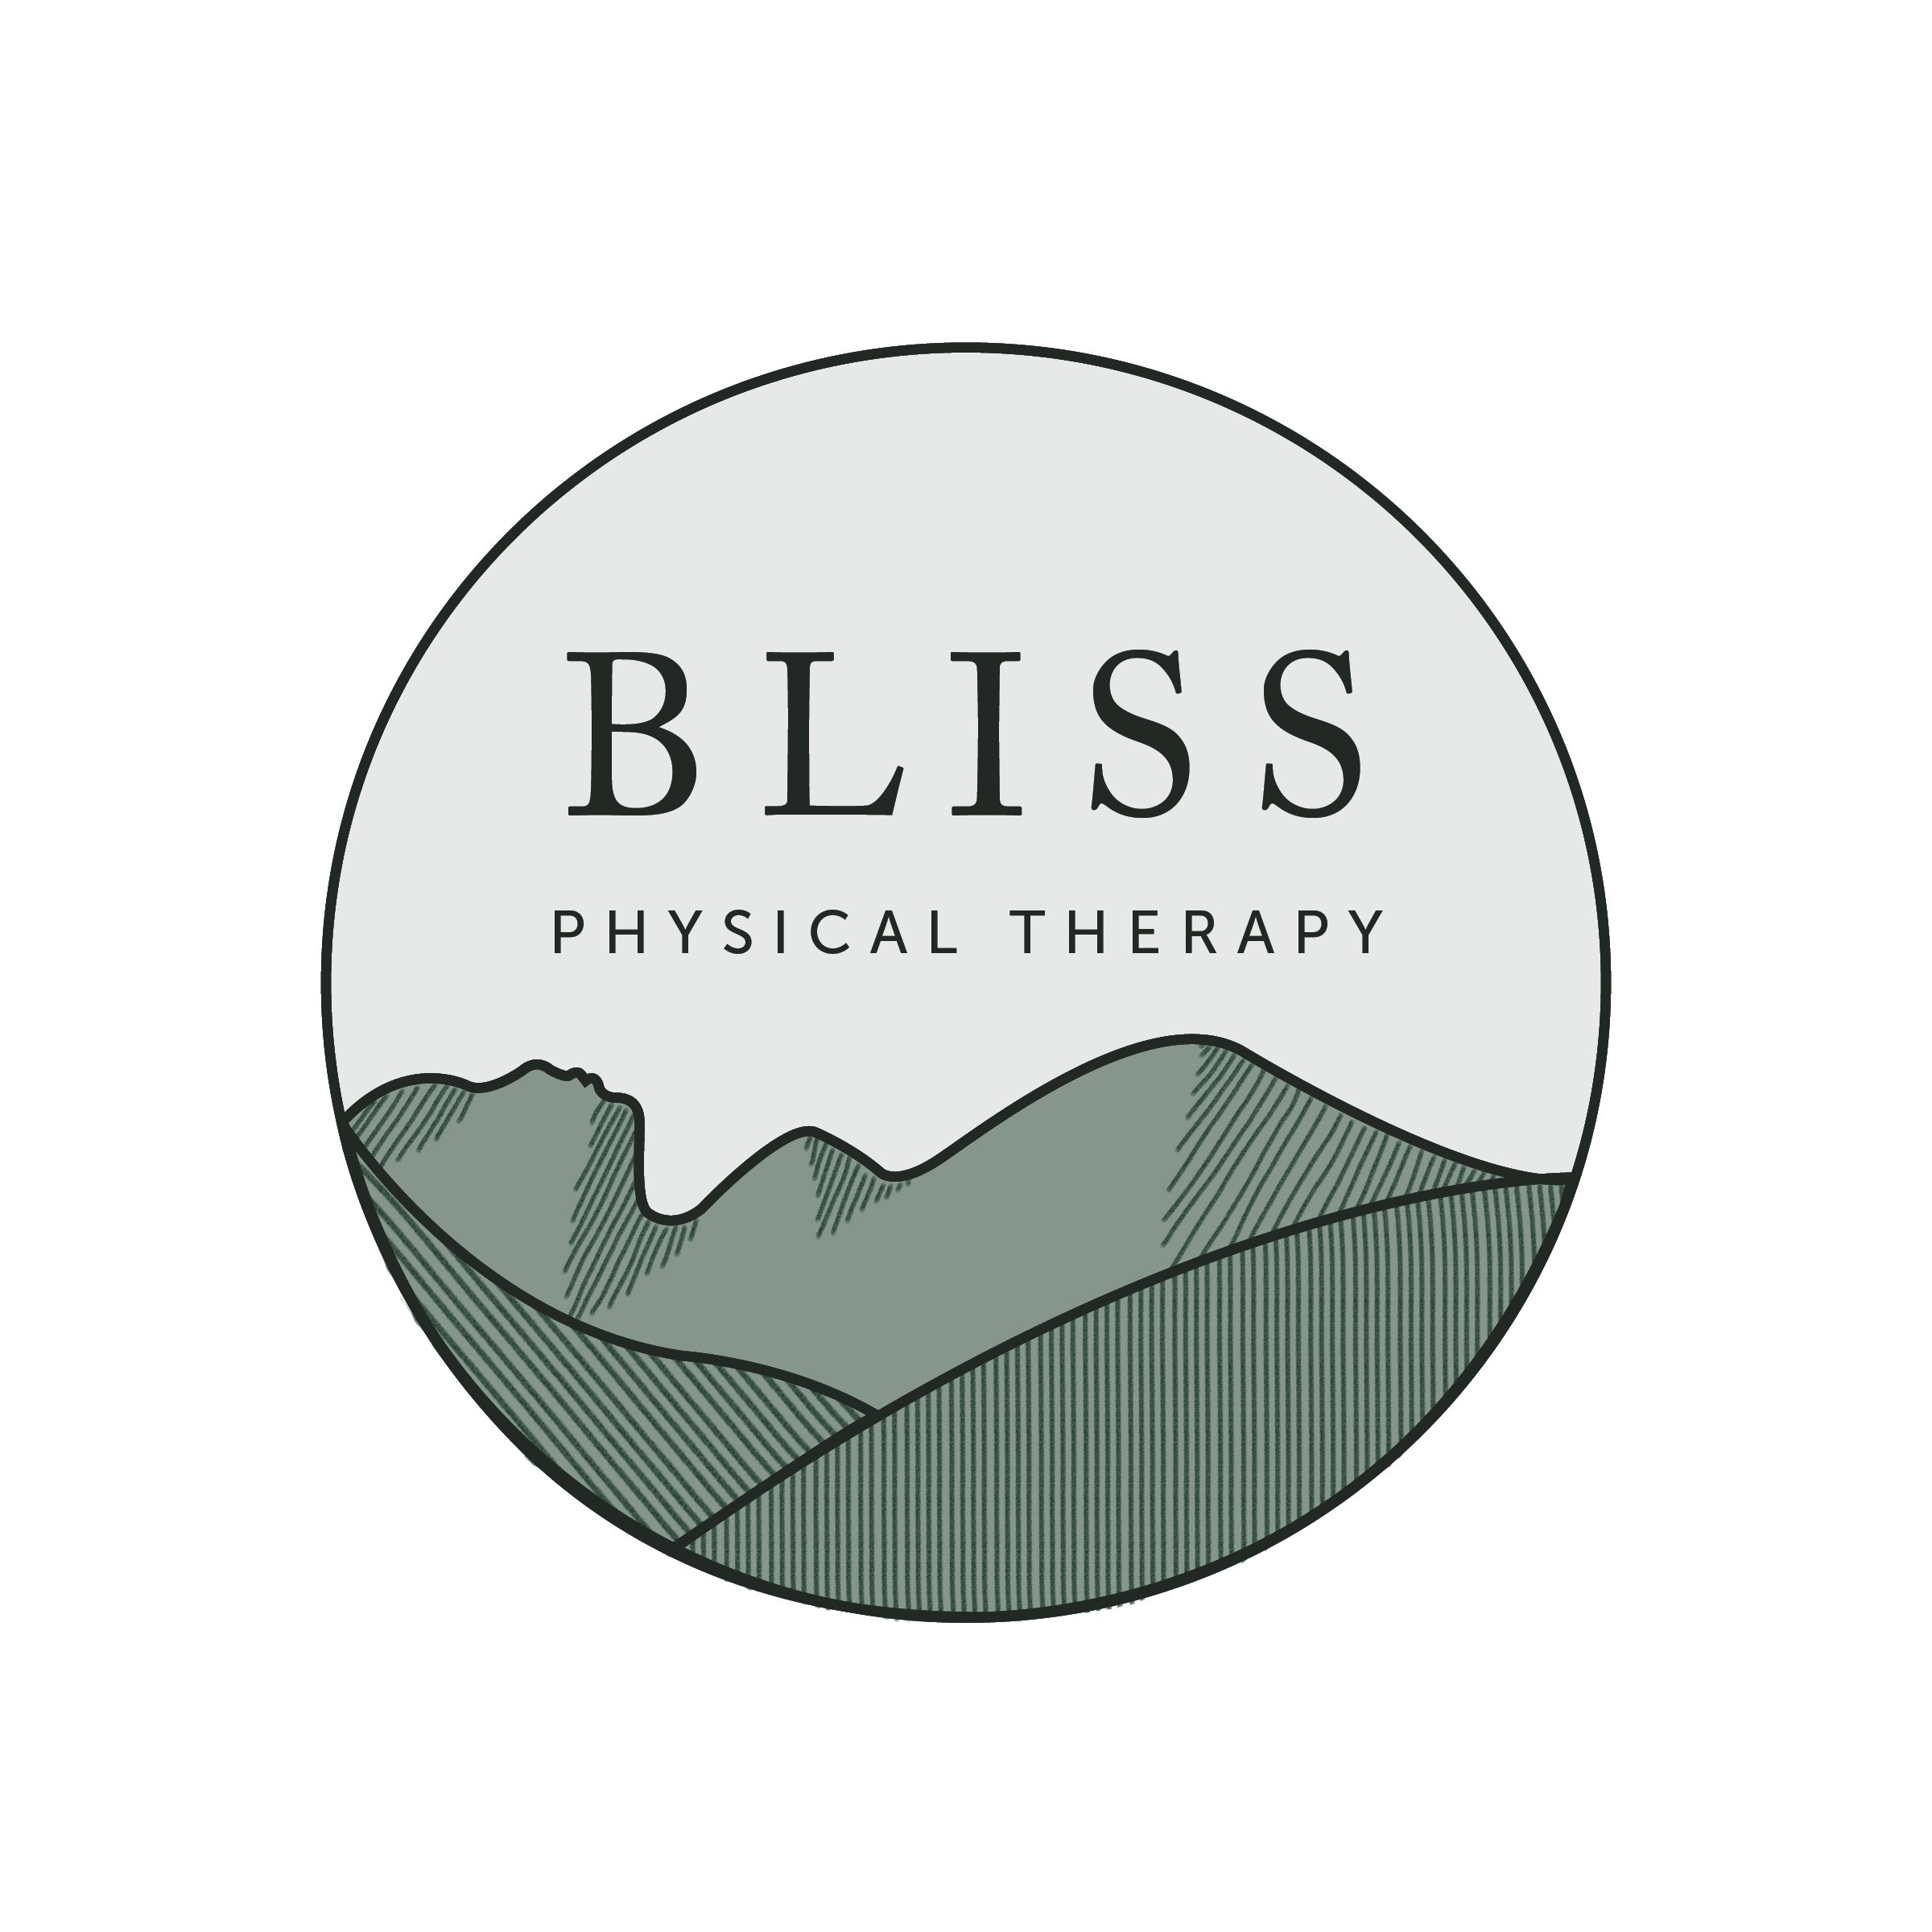 Bliss Physical Therapy